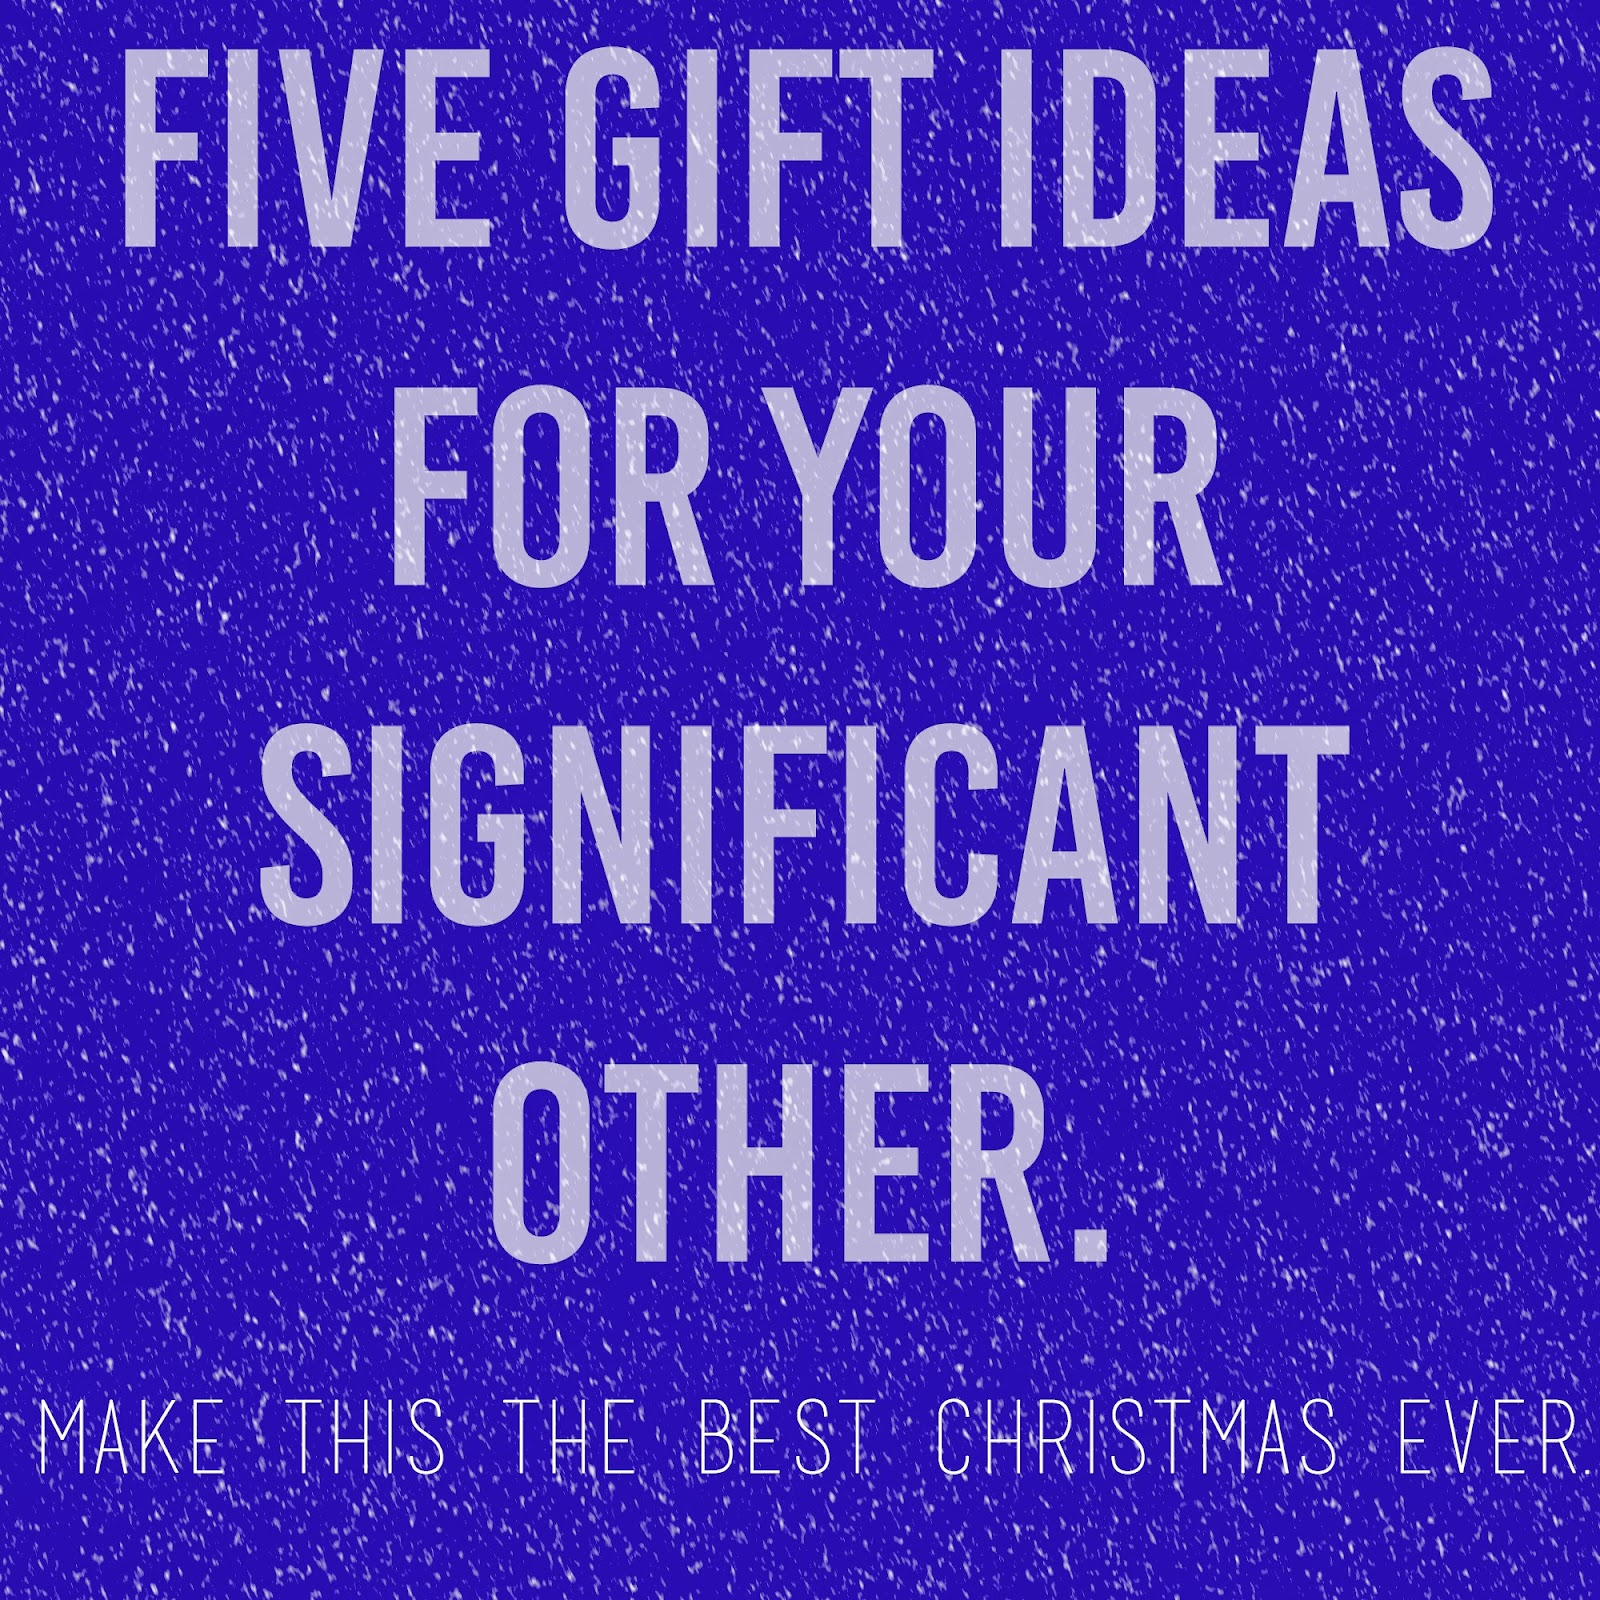 12 Days Of Christmas Gifts For Boyfriend: So You Still Haven't Bought Your Significant Other A Gift